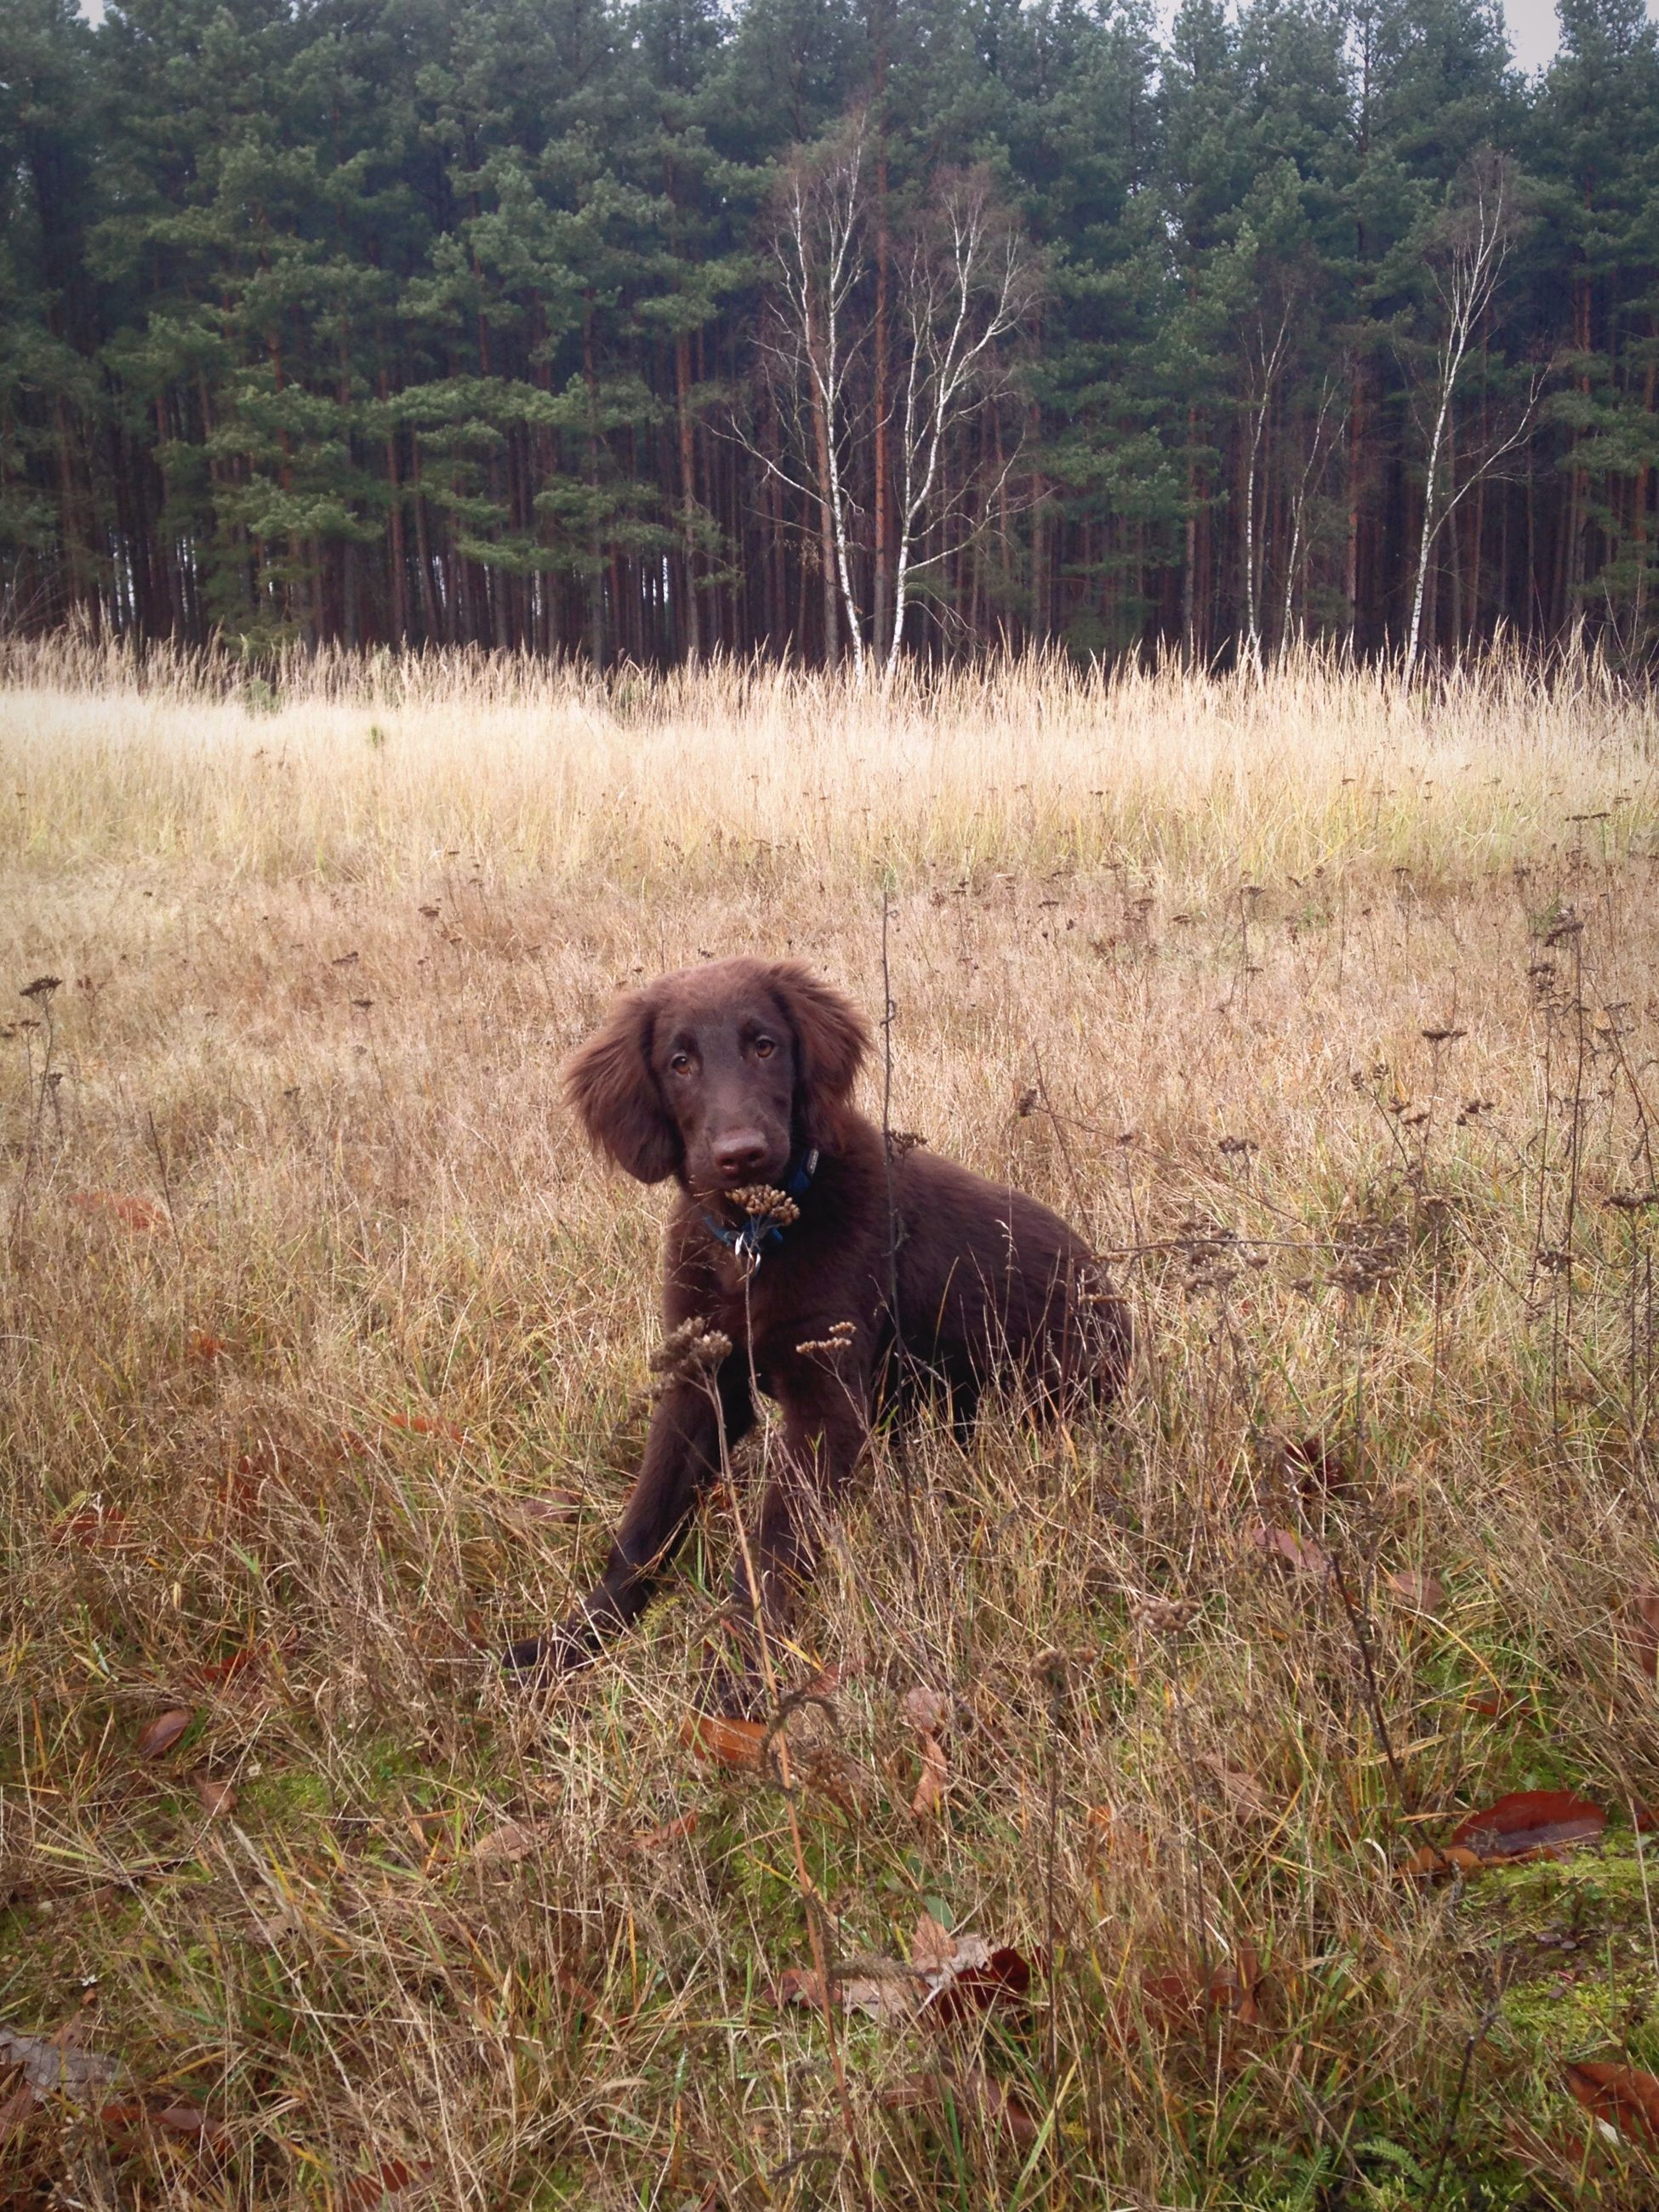 animal themes, one animal, pets, field, domestic animals, grass, mammal, dog, nature, no people, day, tree, outdoors, portrait